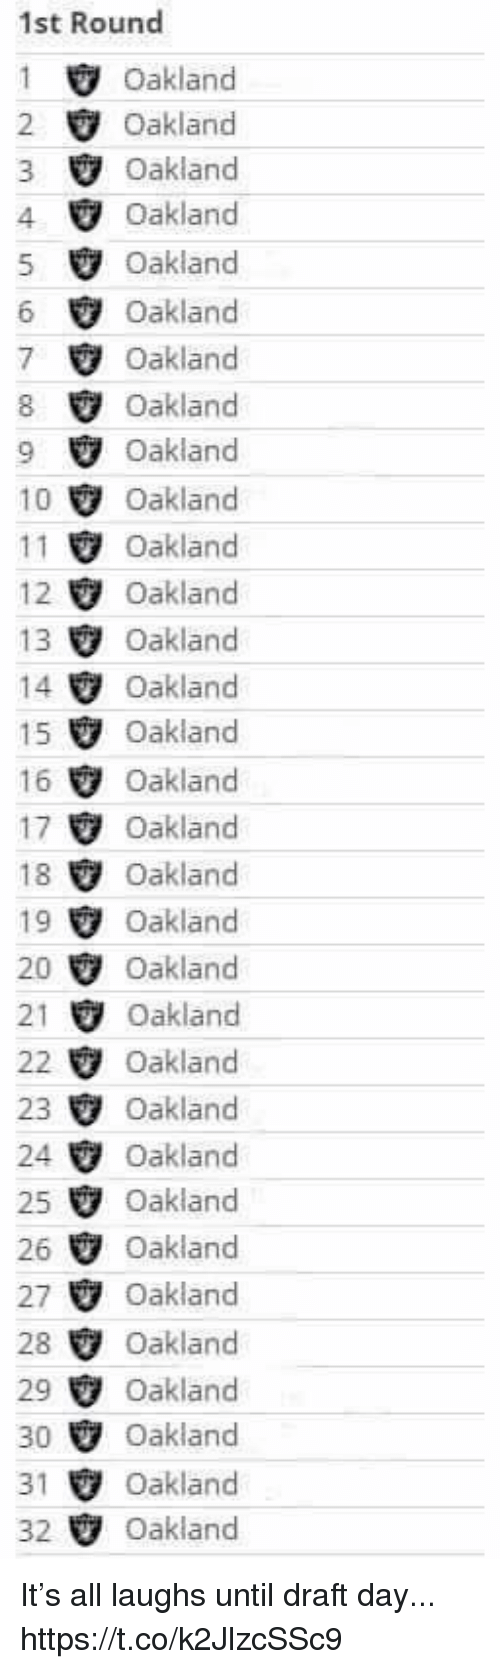 Football, Nfl, and Sports: 1st Round  I Oakland  2 Oakland  3 Oakland  4 Oakland  5 Oakland  Oakland  7Oakland  8Oakland  9ウOakland  10 Oakland  1Oakland  12Oakland  13 Oakland  14 Ψ Oakland  15 Oakland  16Oakland  17▼ Oakland  18 Oakland  19Oakland  20 Oakland  21 Oakland  22 Oakland  23 Oakland  24 Oakland  25 Oakland  26 Oakland  27 Oakland  28 Oakland  29 Oakland  30 Oakland  31 Oakland  32 Oakland It's all laughs until draft day... https://t.co/k2JlzcSSc9